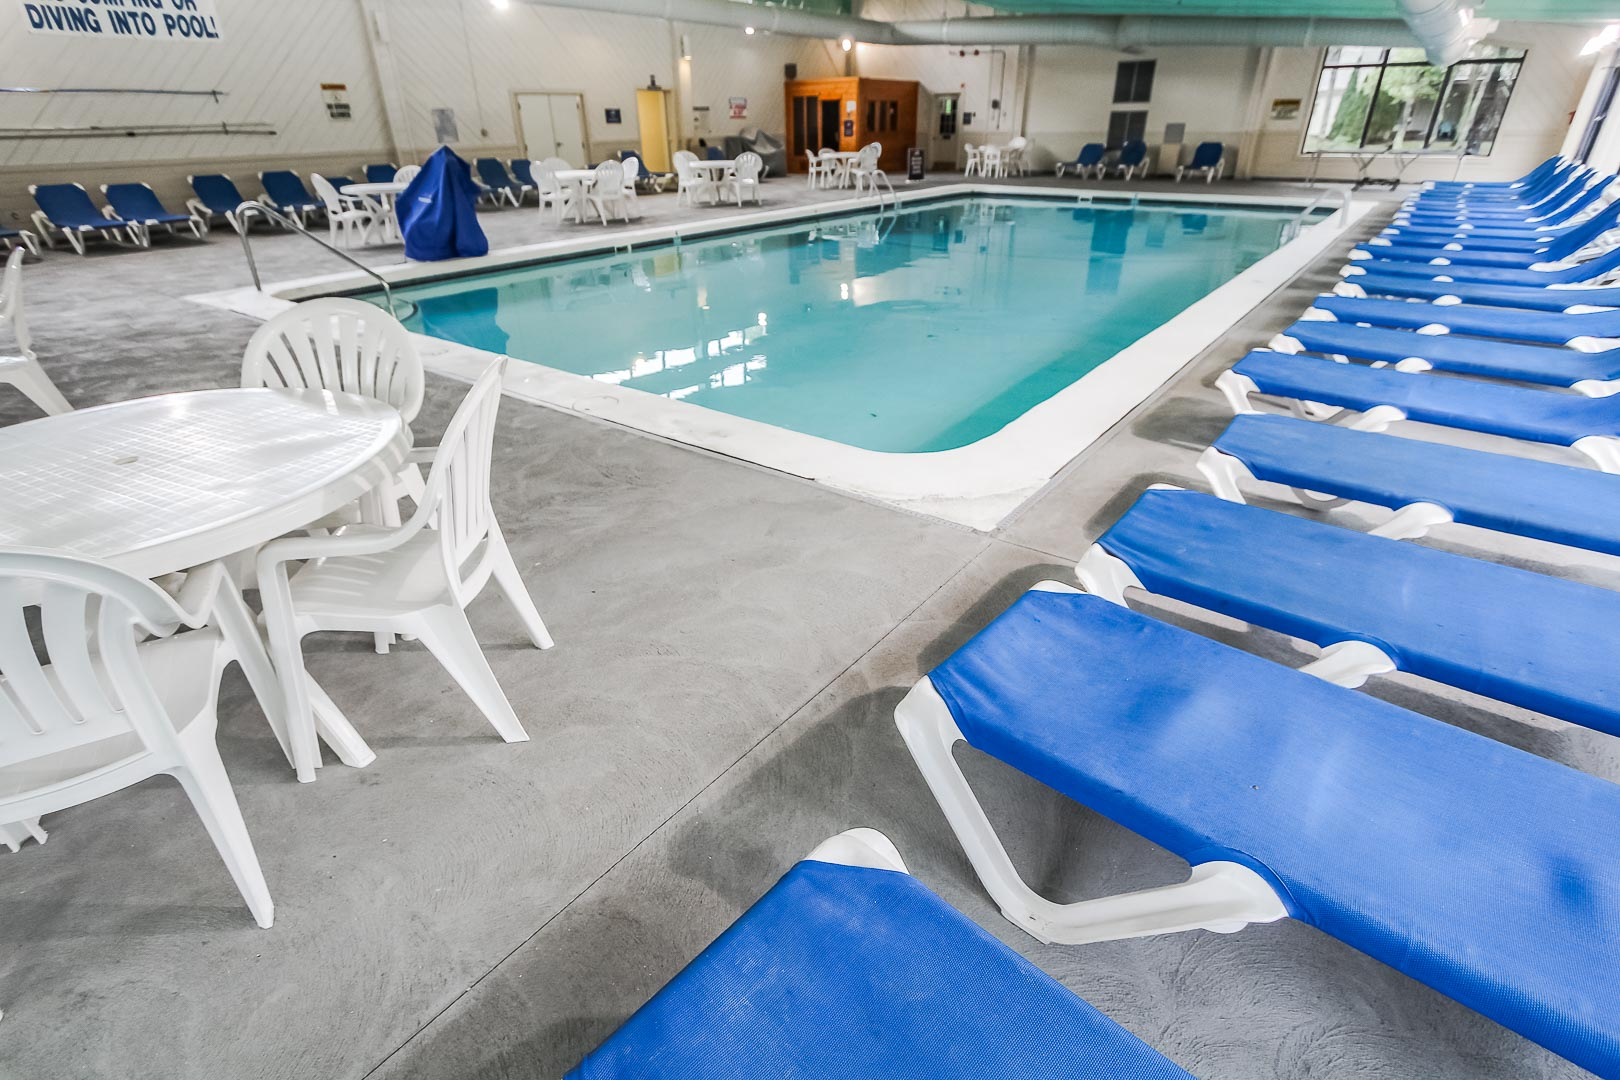 A quaint indoor swimming pool at VRI's Sea Mist Resort in Massachusetts.